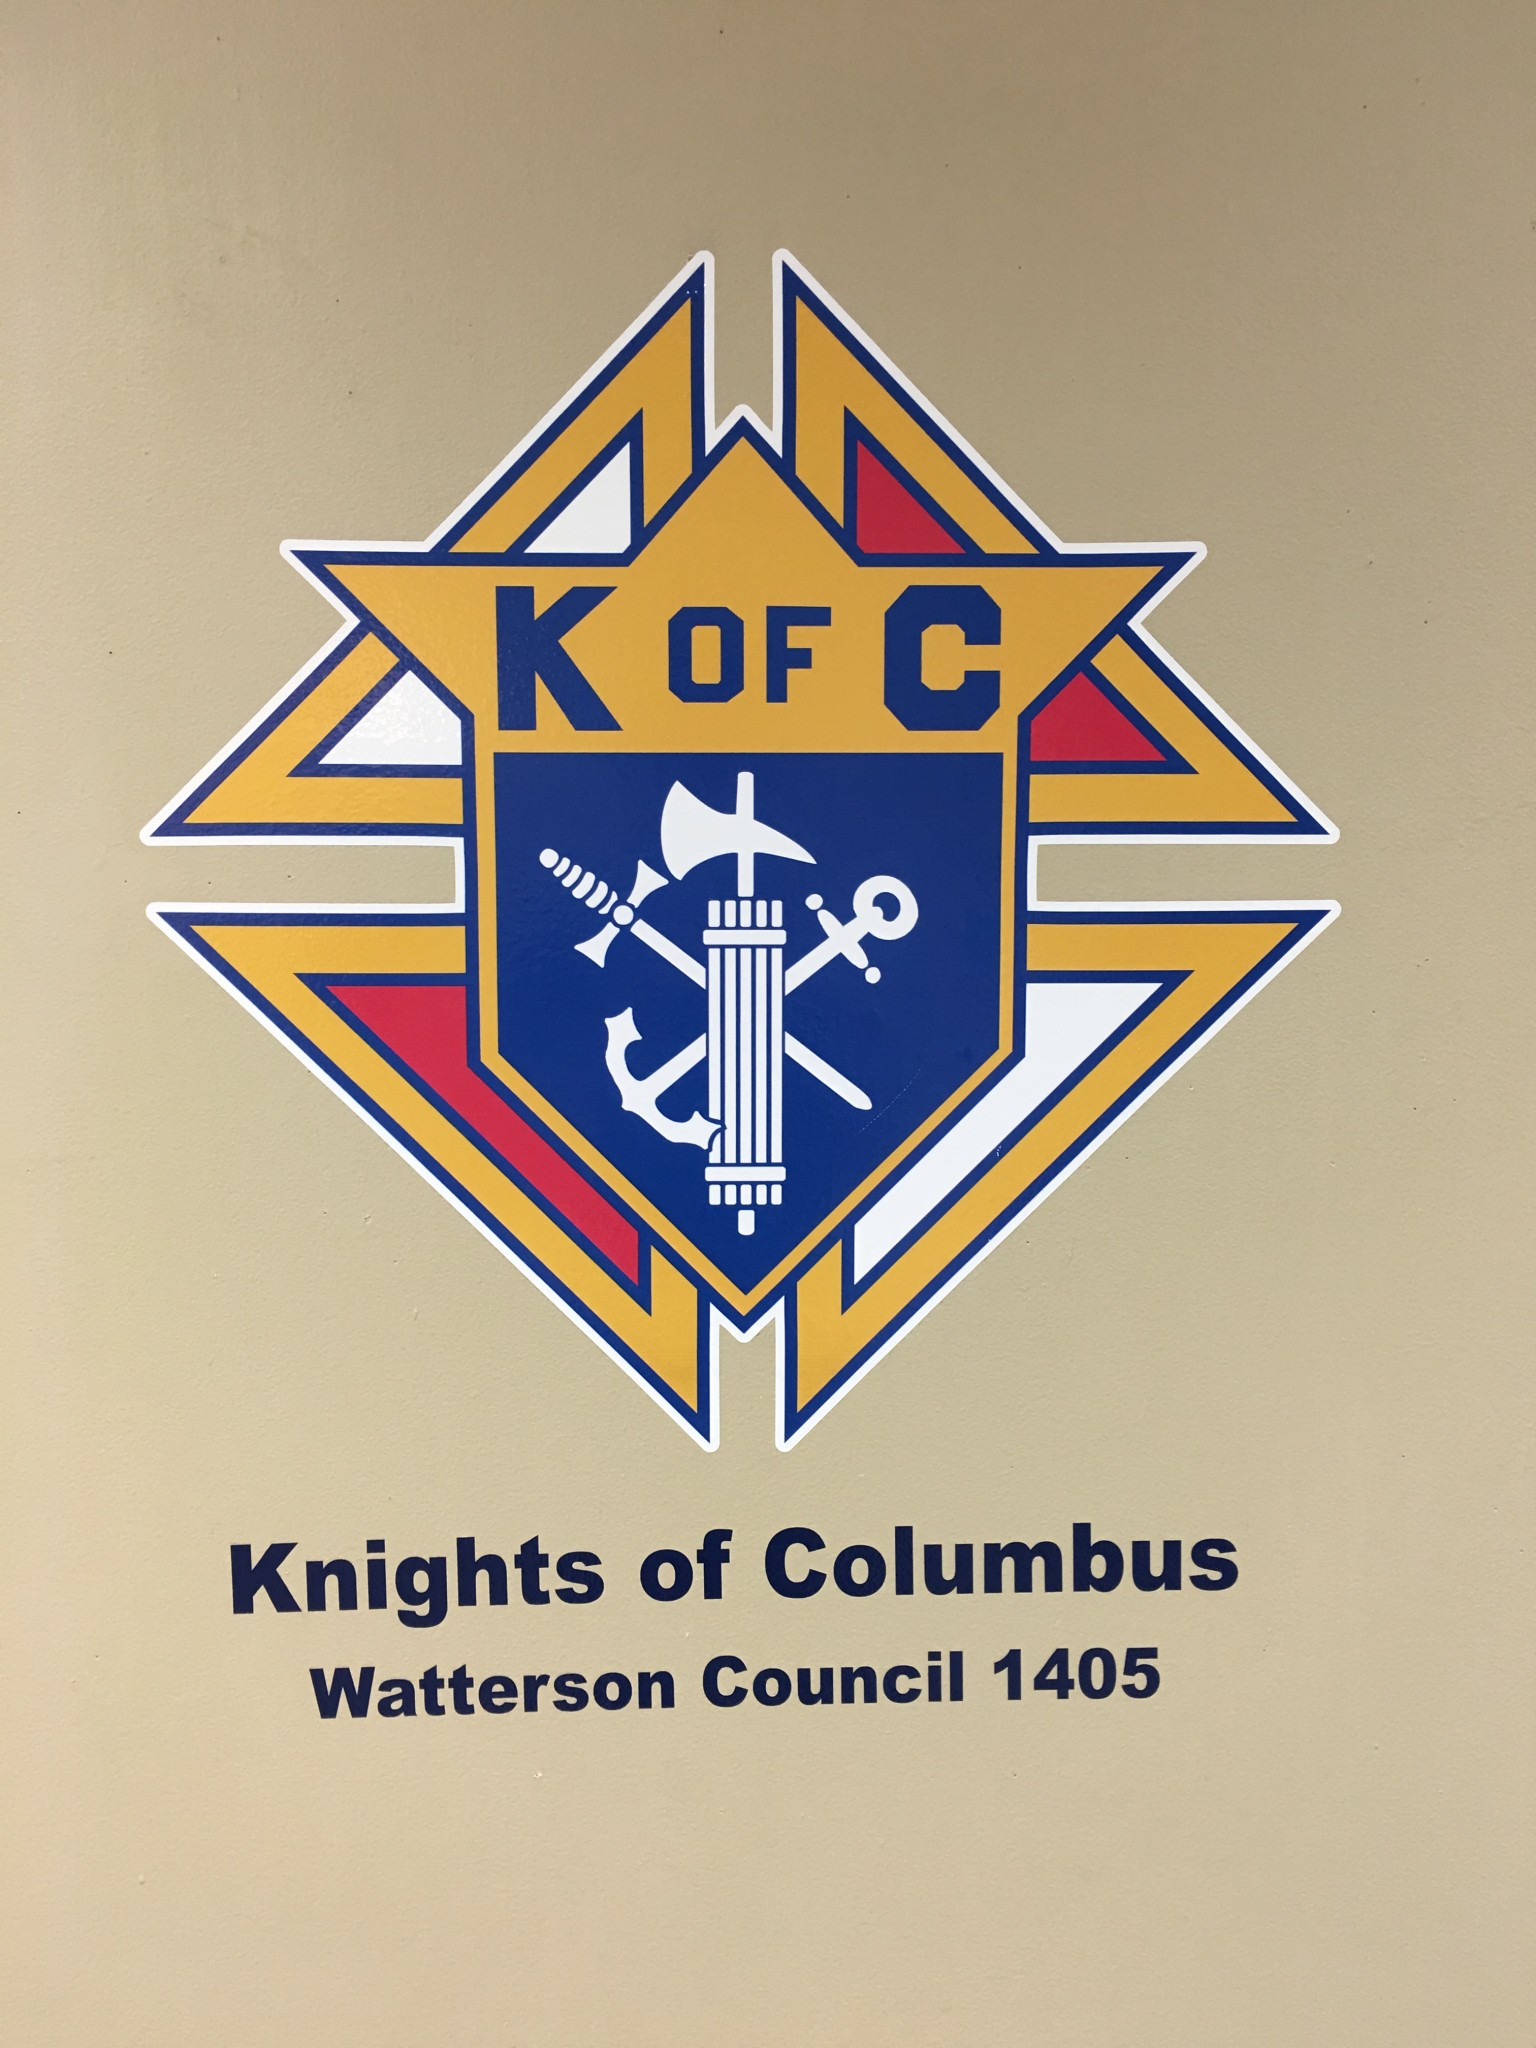 Two Nights at Knights of Columbus